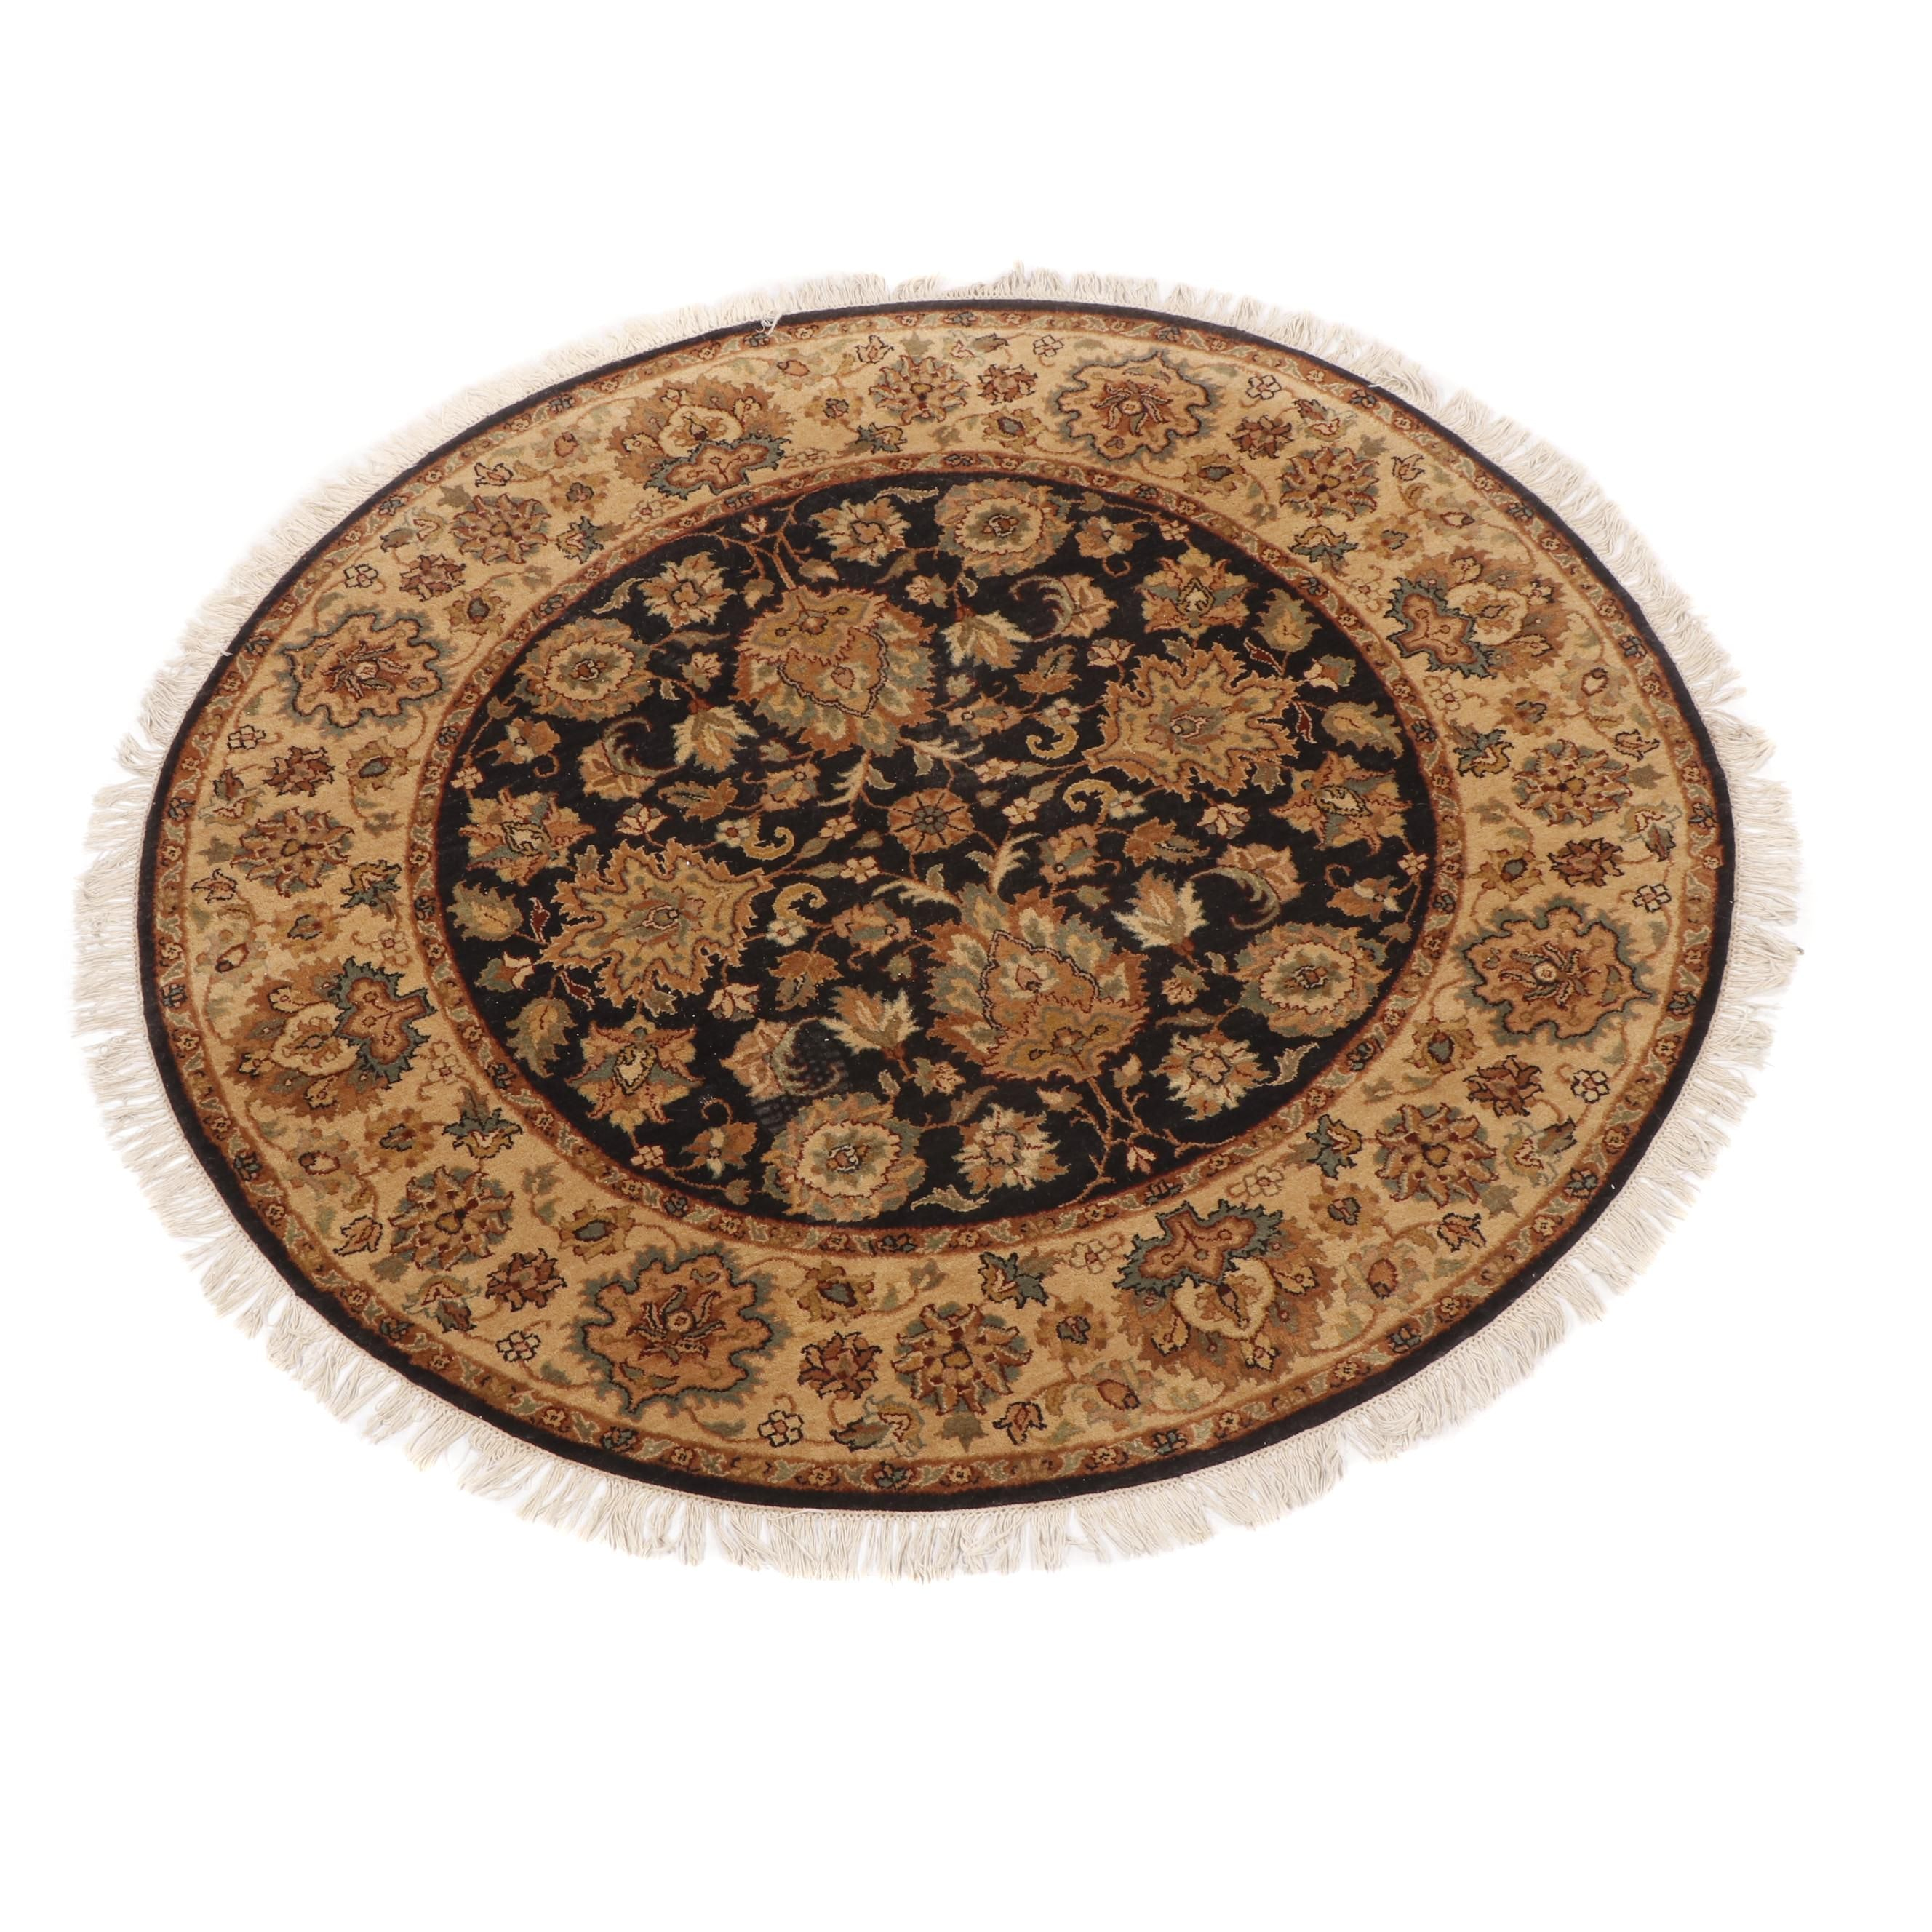 Hand-Knotted Indian Agra Style Wool Area Rug